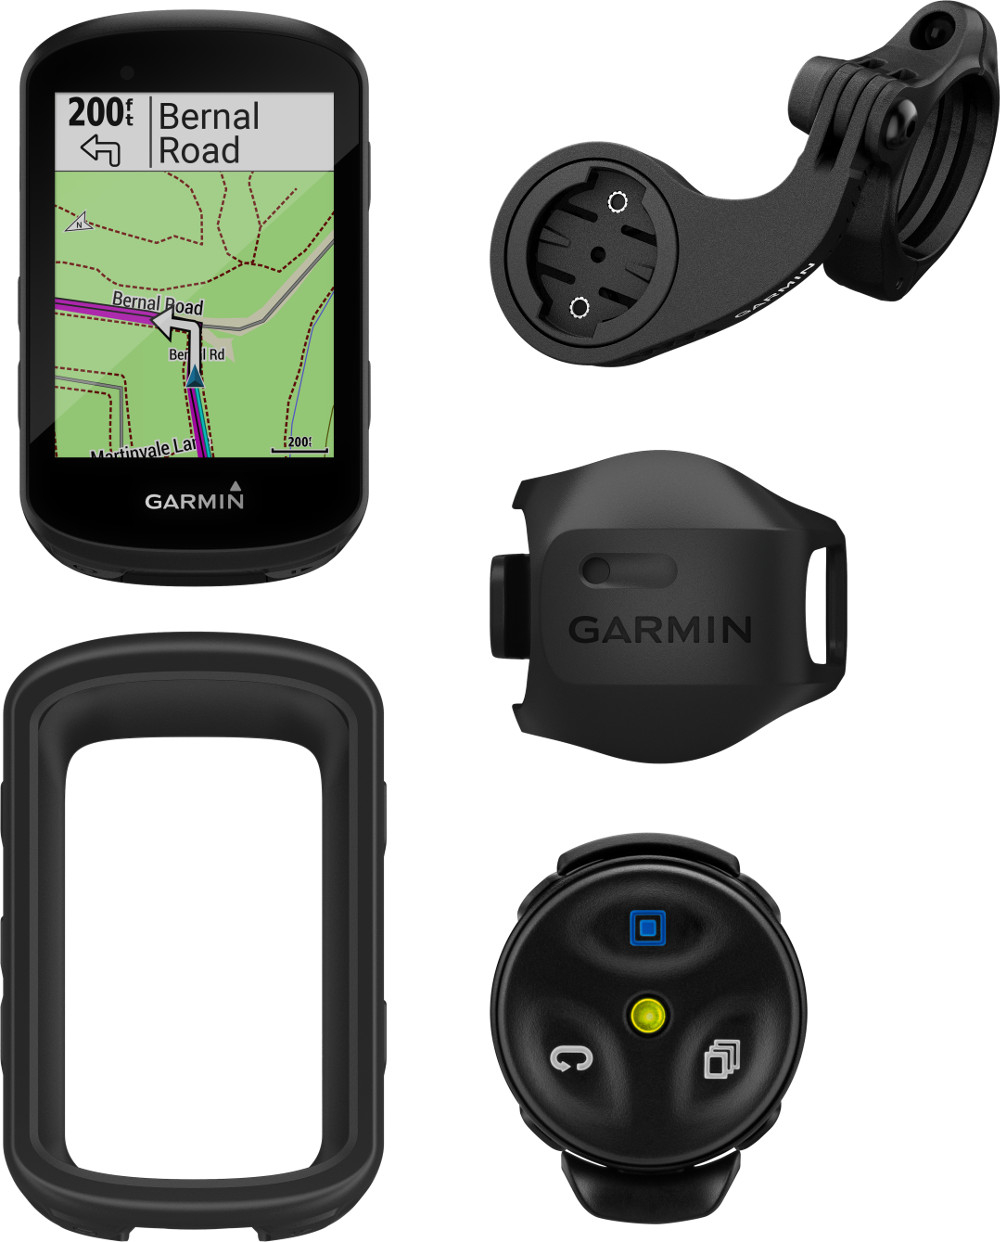 Garmin Edge 530 Mountainbike Bundle | Cykelcomputere